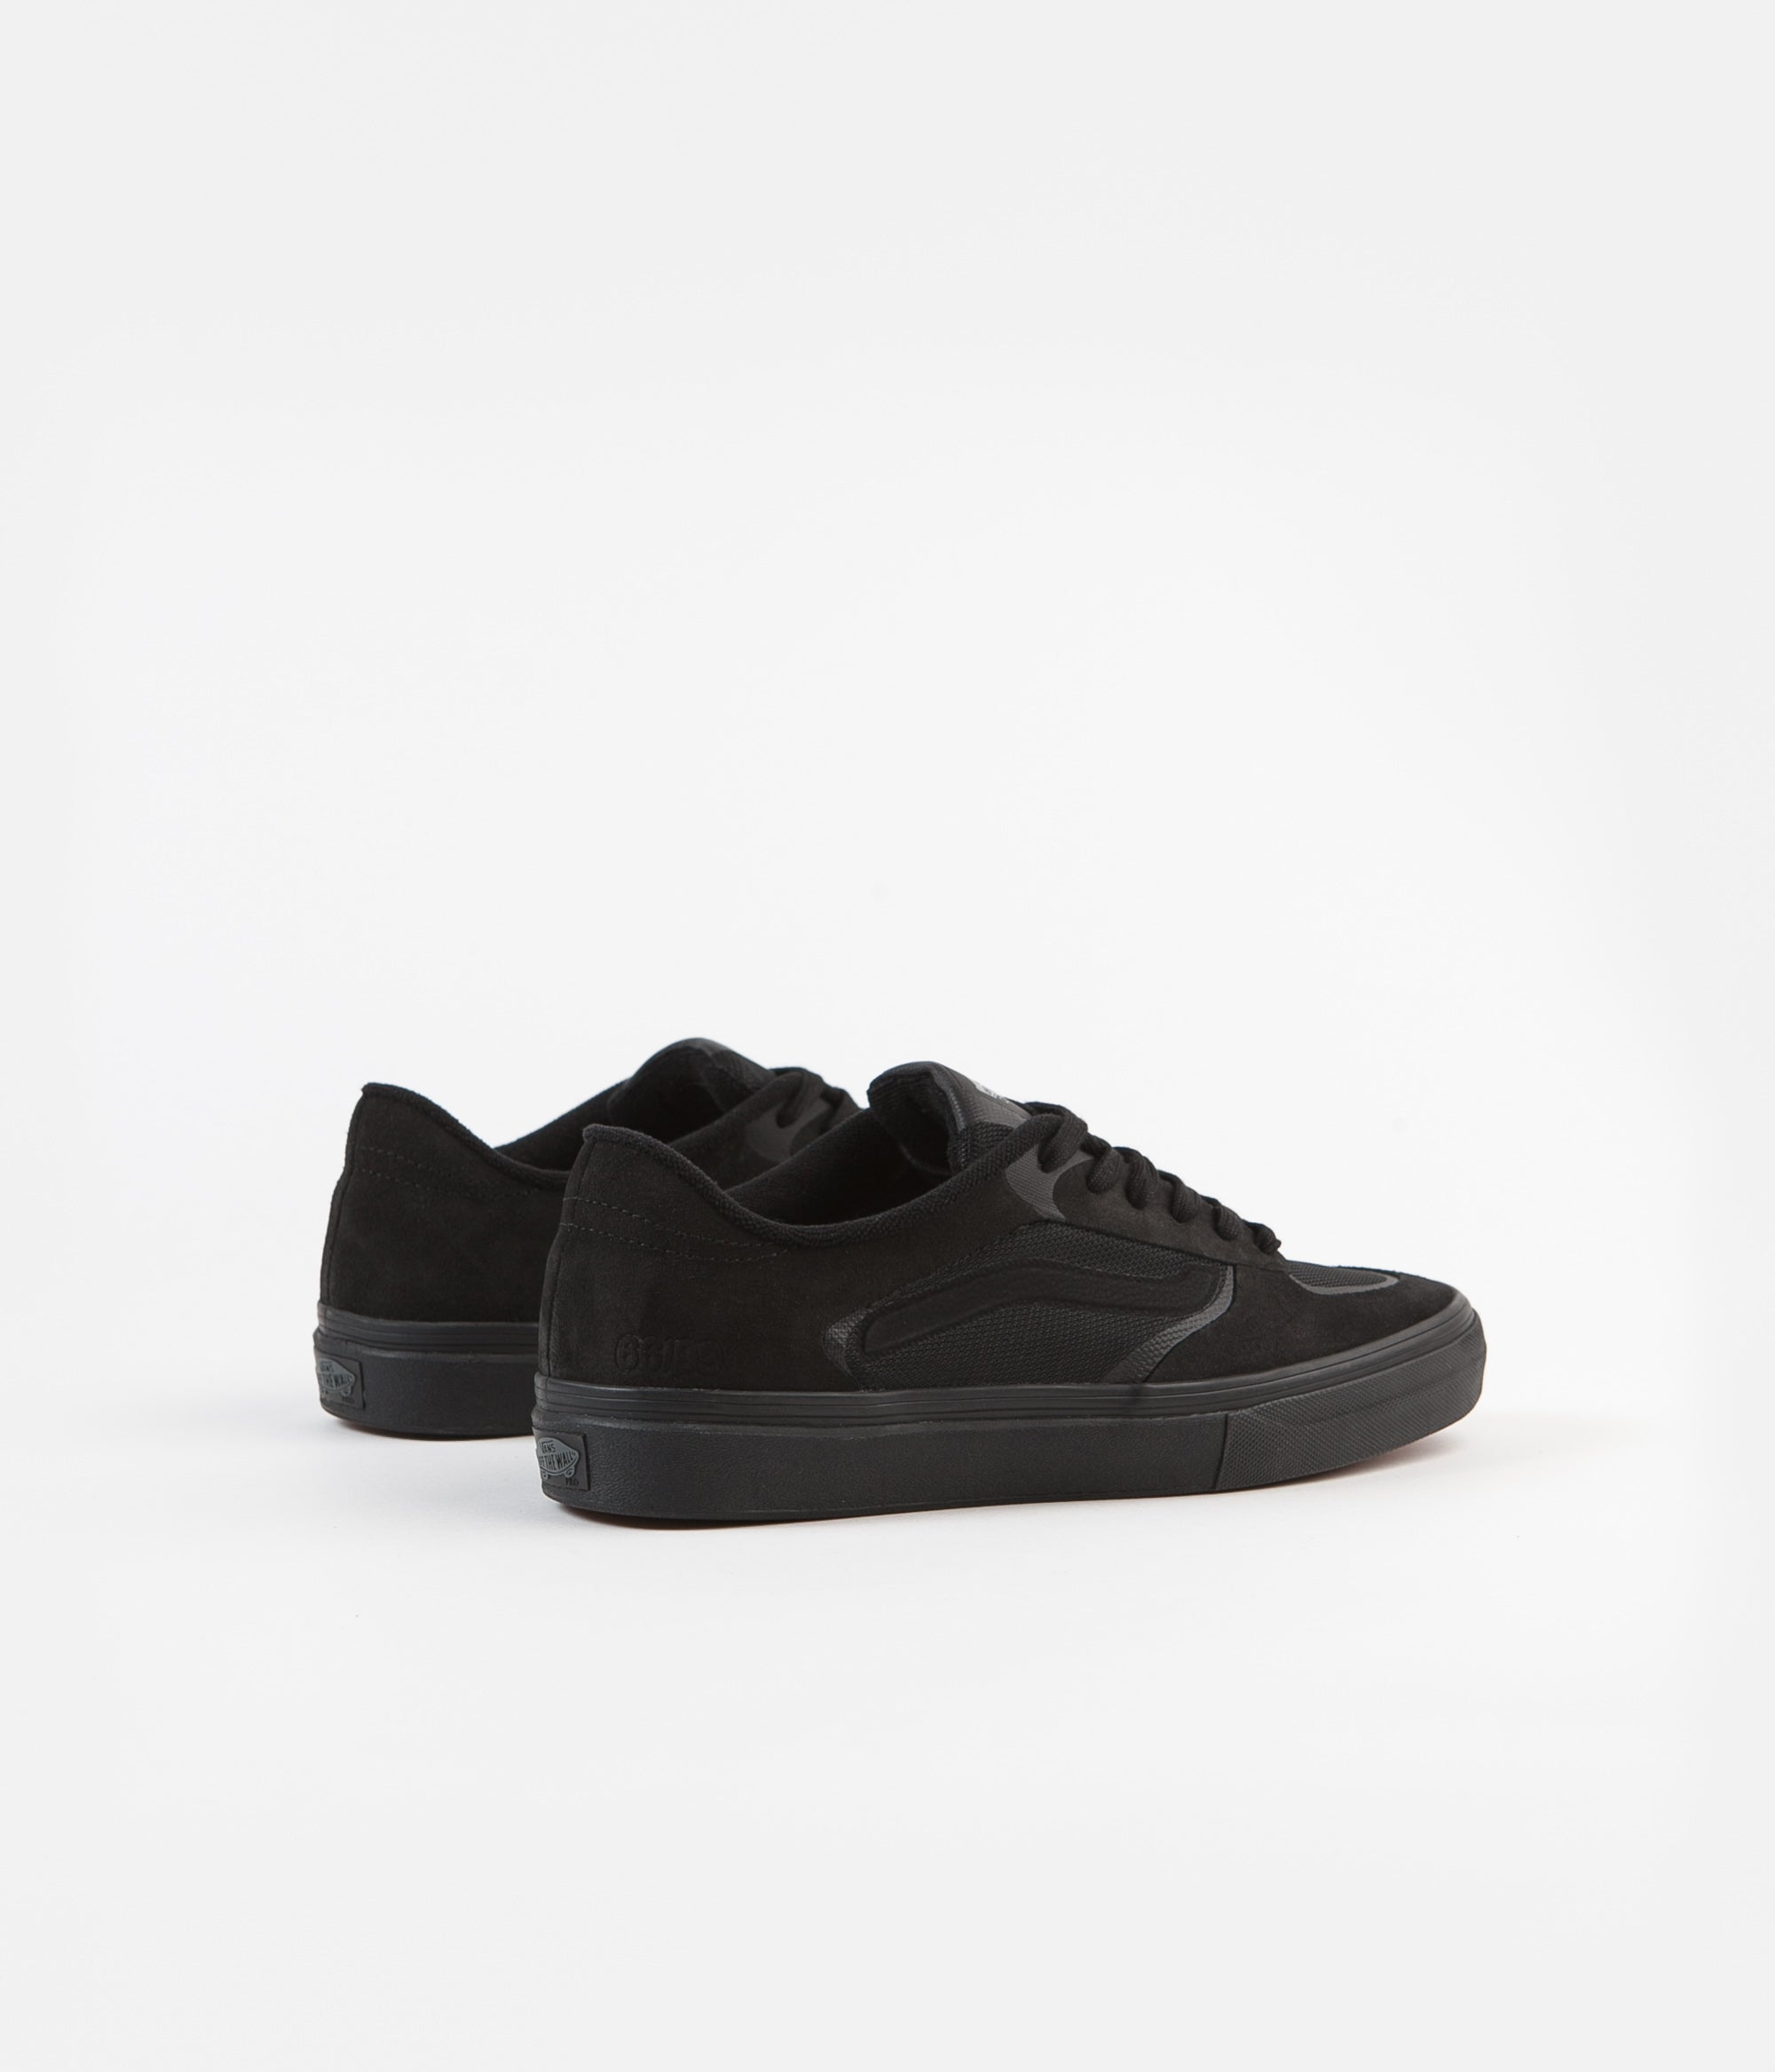 Vans Rowley Rapidweld Pro Shoes - Black / Black